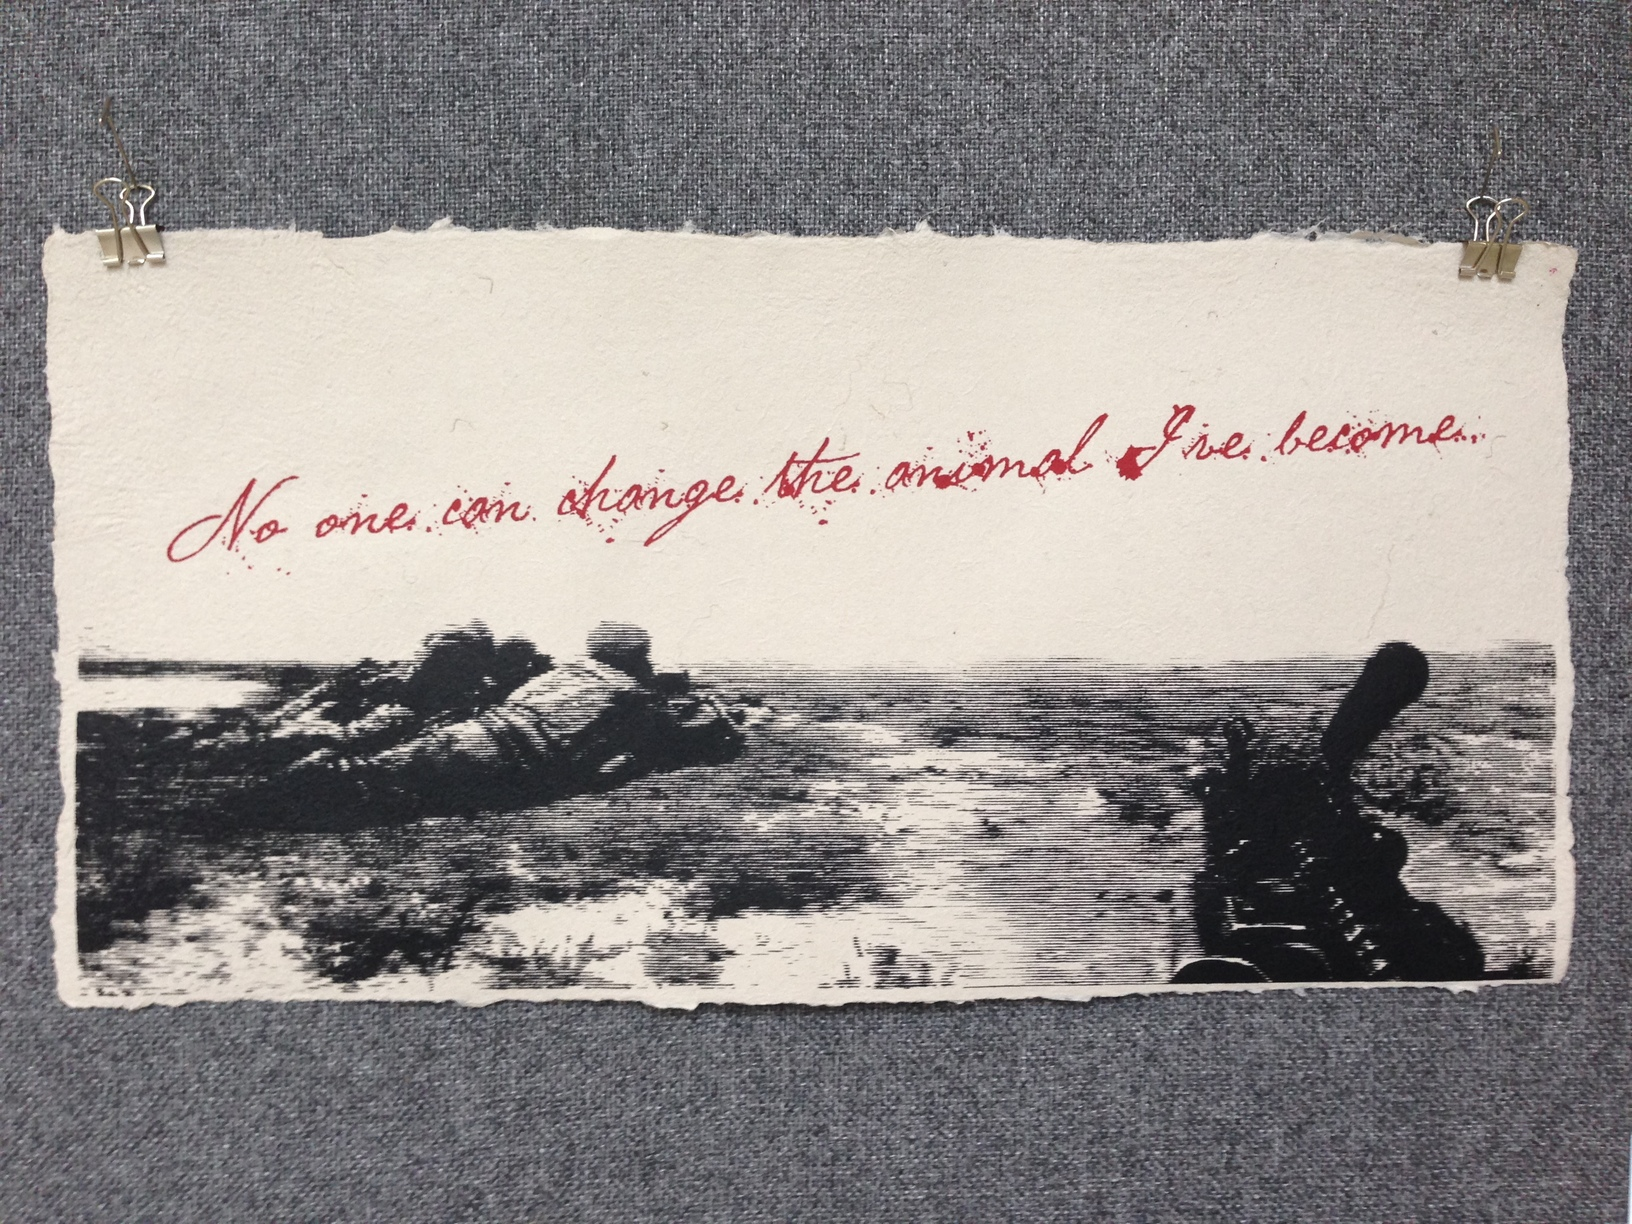 Jesse Violante Army - Afghanistan _No One Can Change the Animal Ive Become_ 2013 Silkscreen on Handmade Paper from military uniforms 10 x 20 Stockton College Workshop IMG_1208JPG.jpg